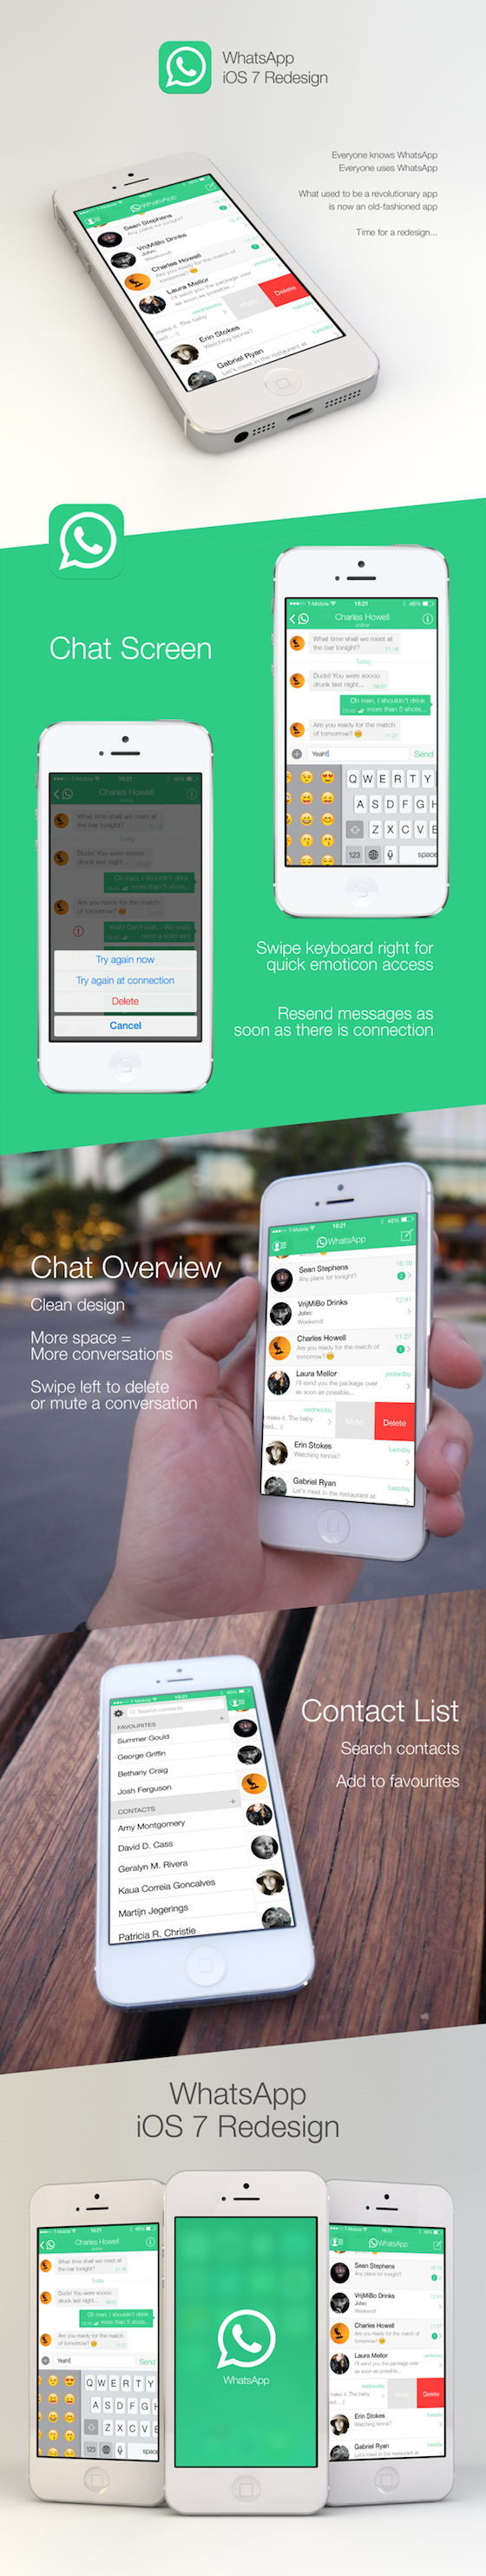 WhatsApp iOS 7 redesign Martijn Jegerings